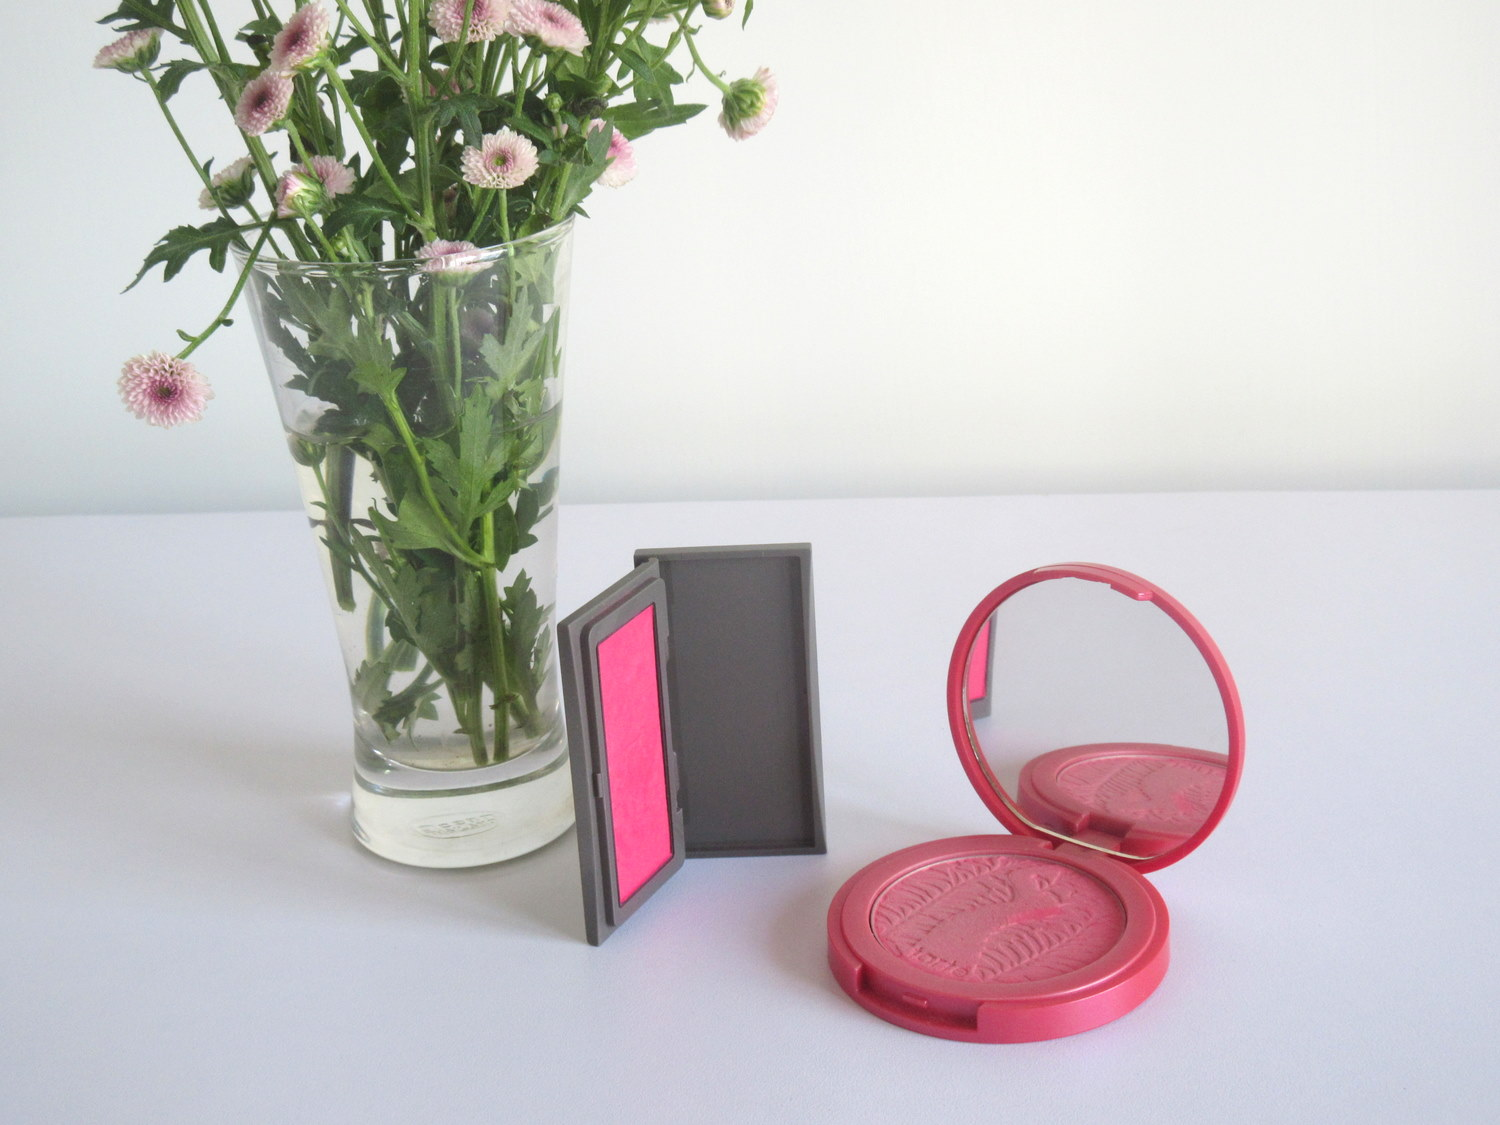 Three Cheeky Chic Blush 14 Beat Of Her Heart, Tarte Amazonian Clay 12-Hour Blush Natural Beauty